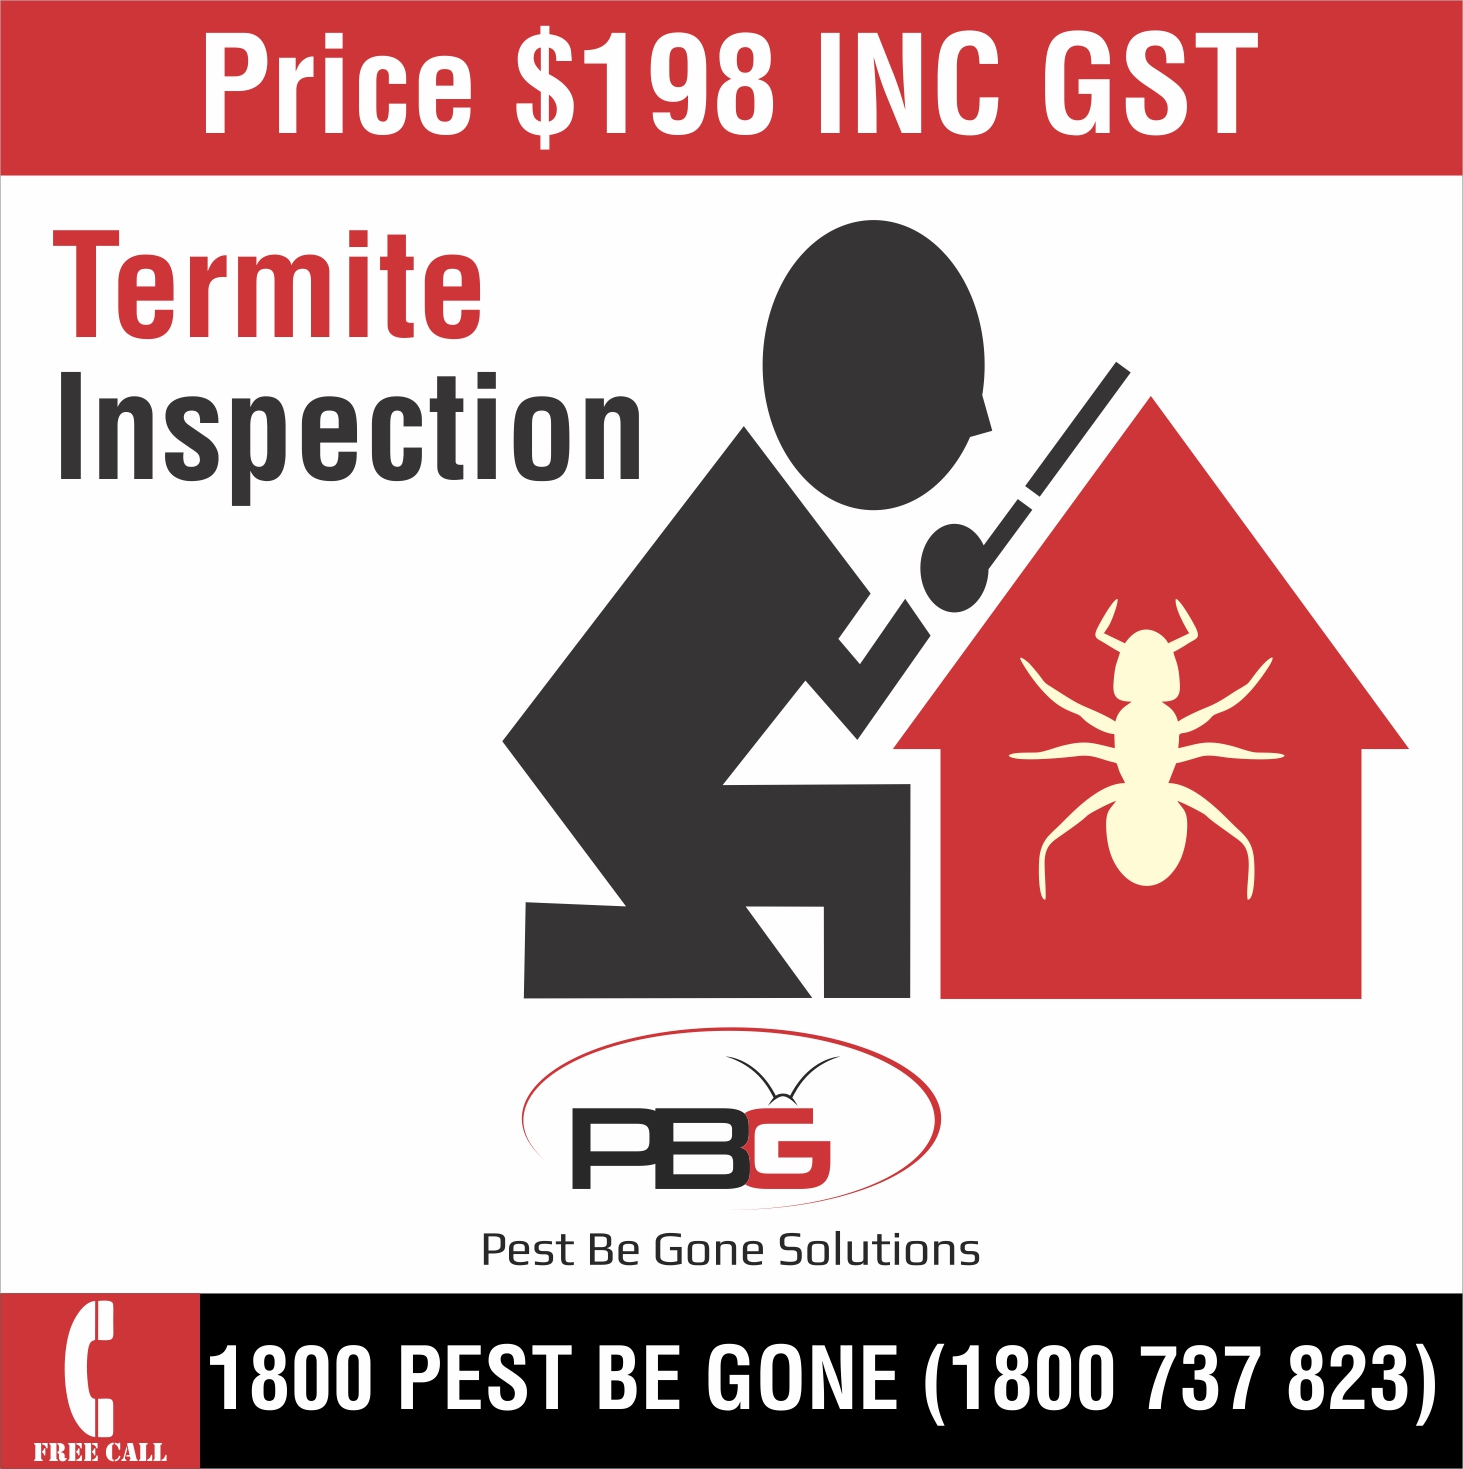 Promotions Pest Be Gone Solutions